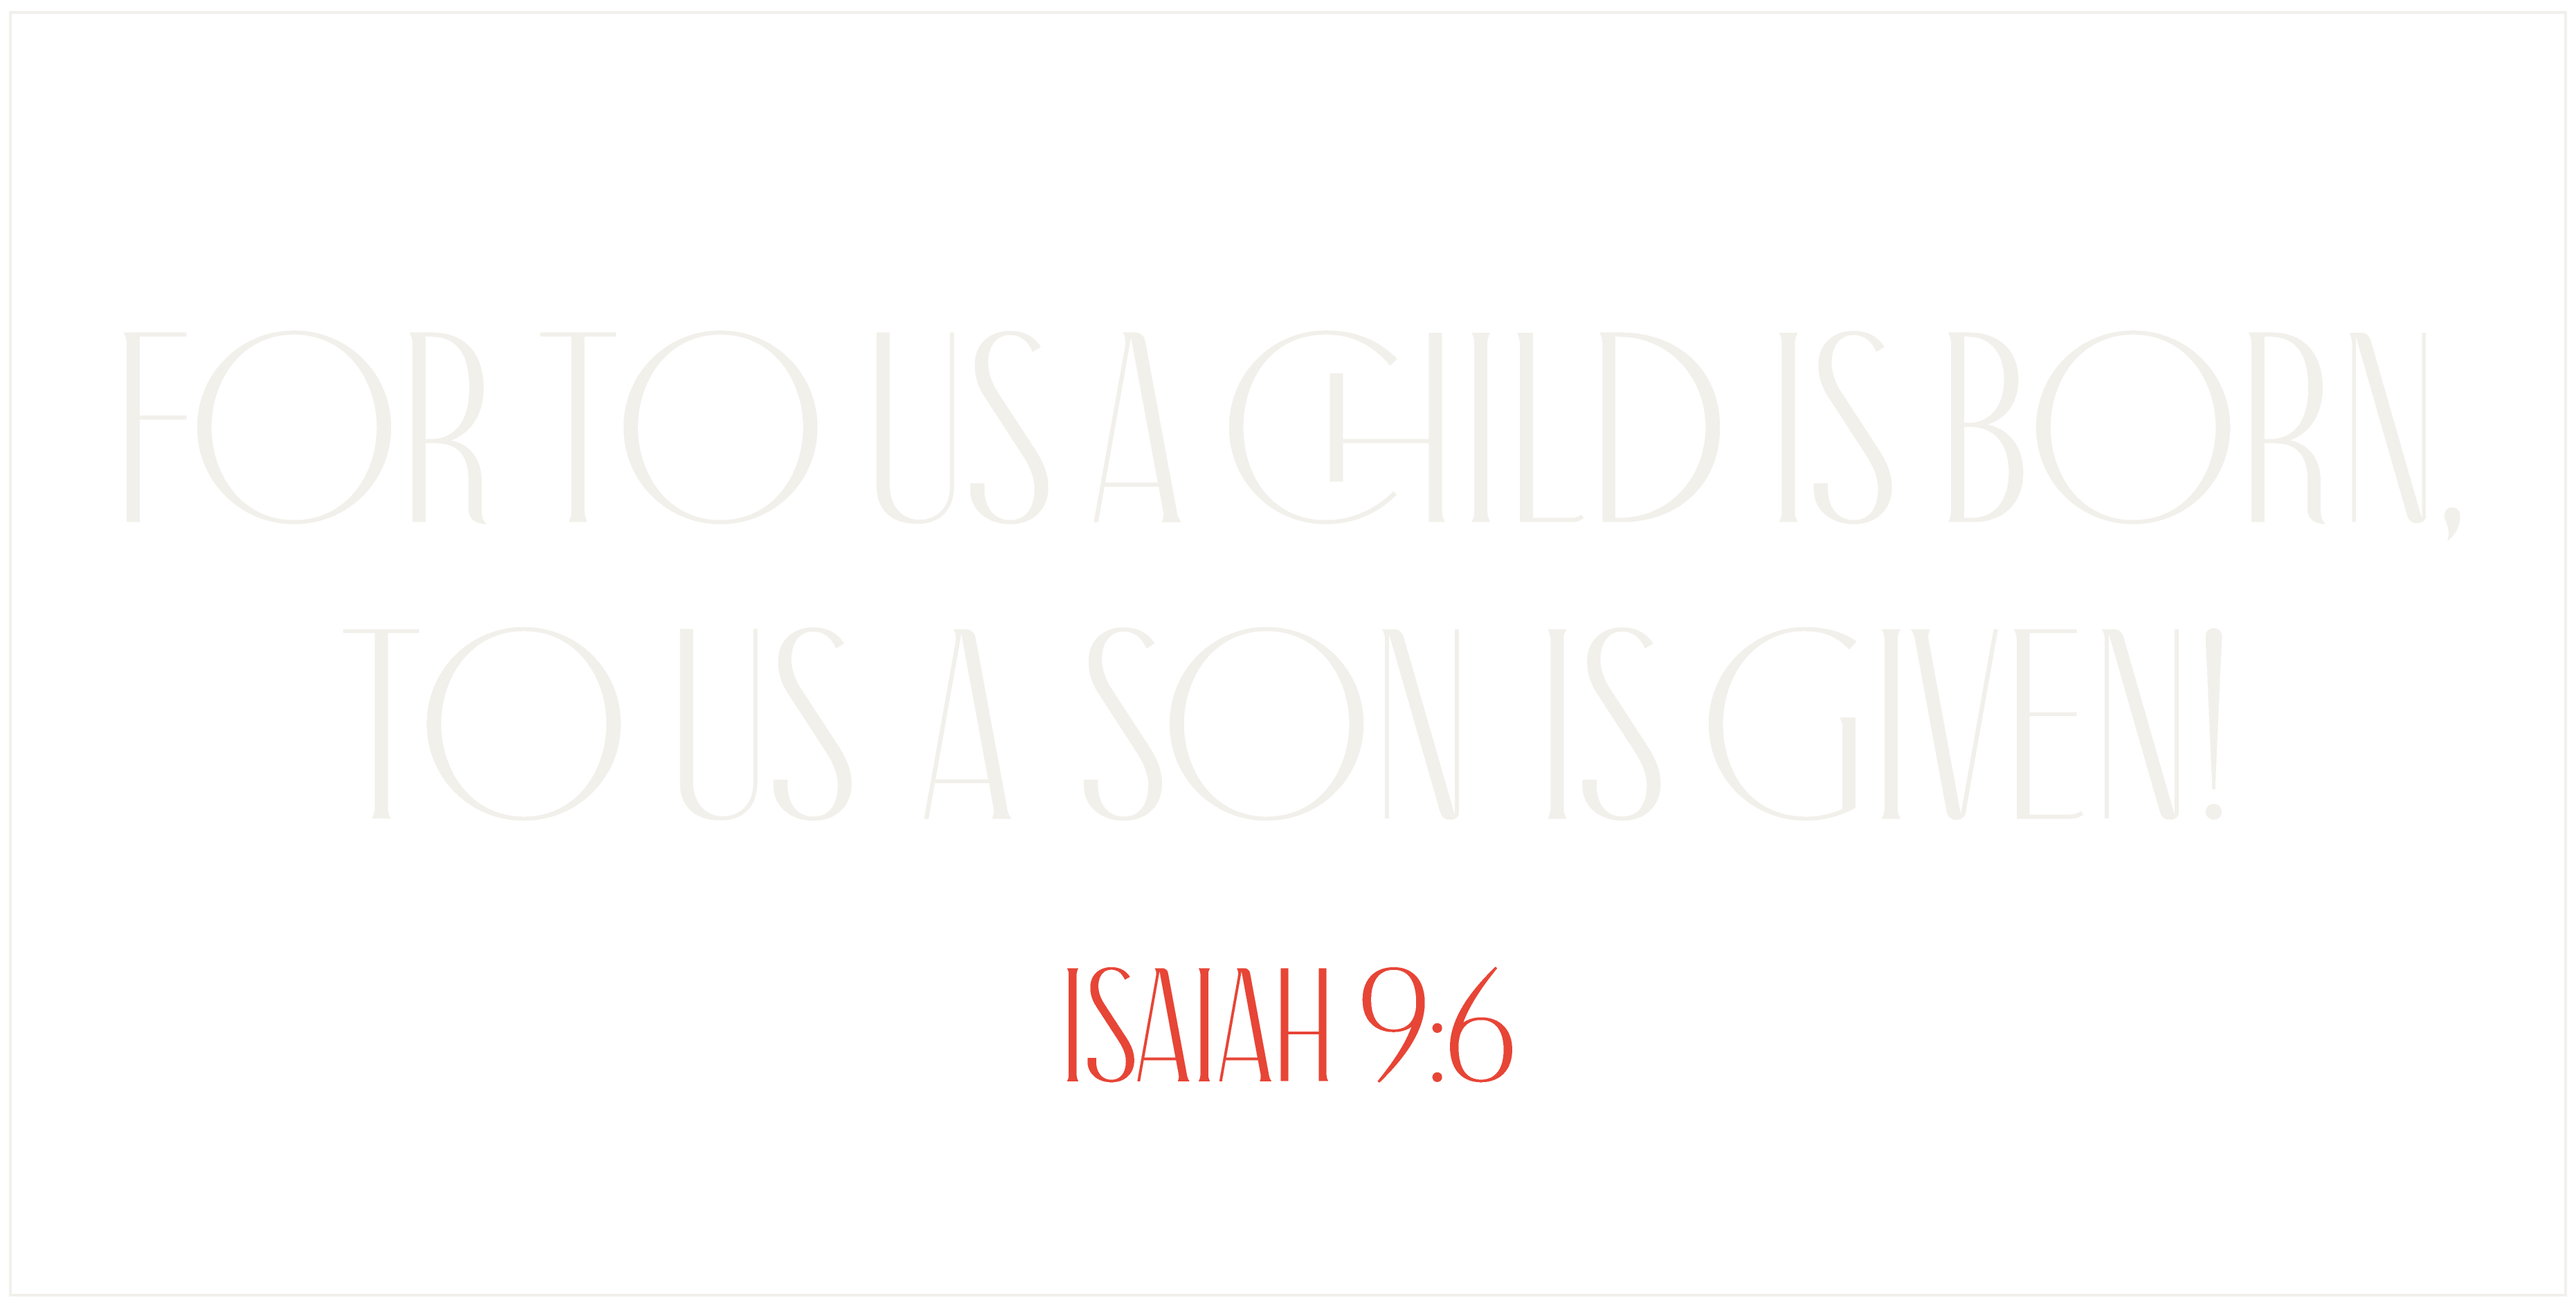 For to us a child is born, to us a son is given! Isaiah 9:6